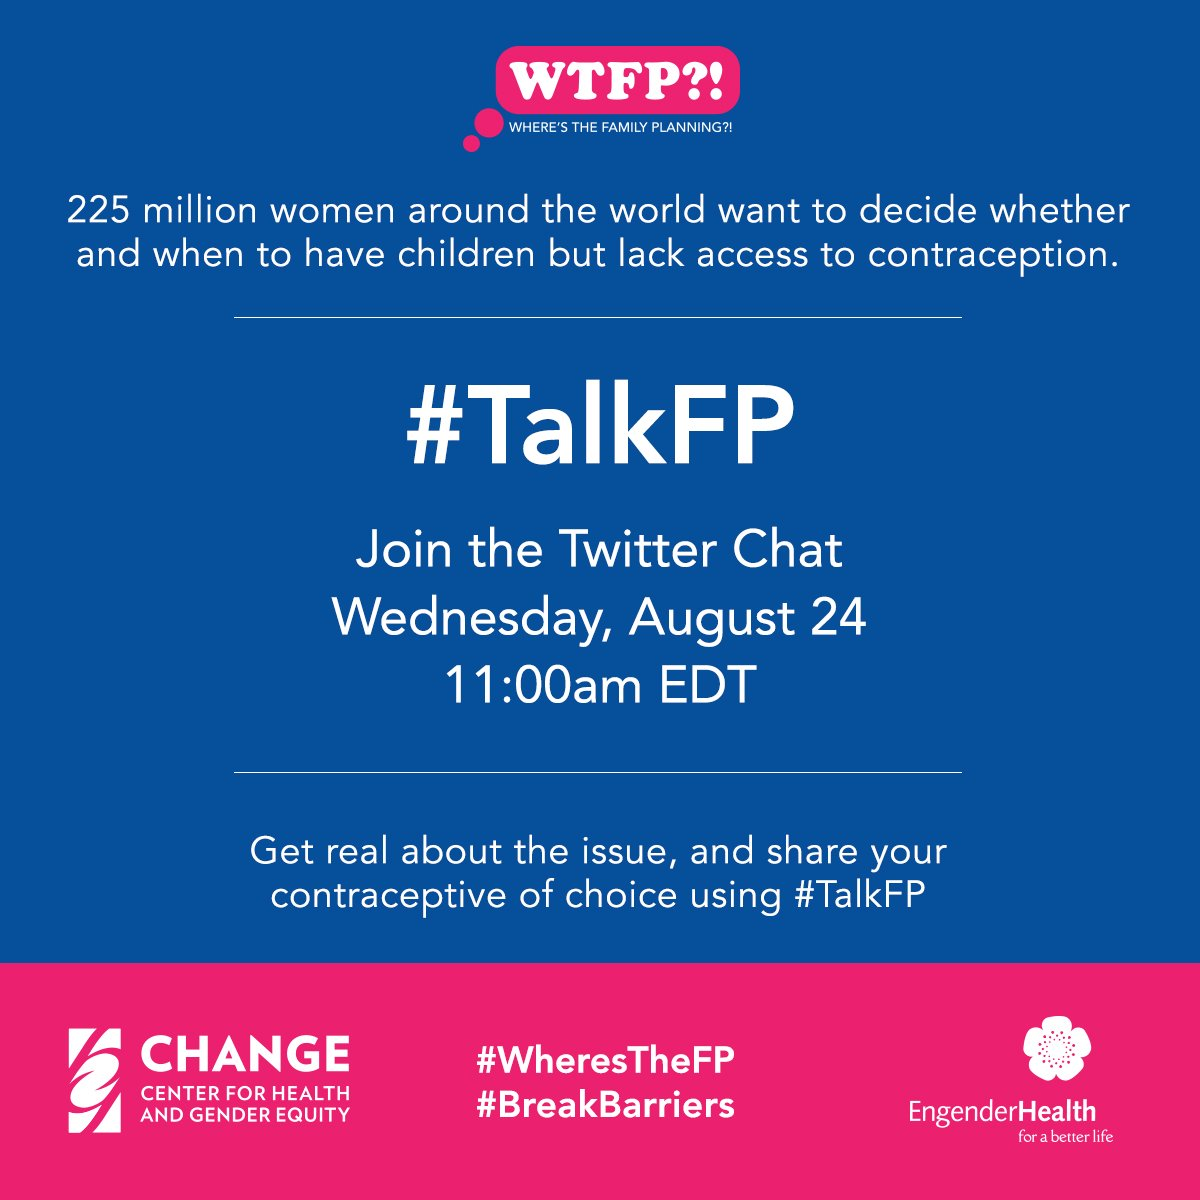 225 million women around the world want modern contraception and lack access to it. #TalkFP #BreakBarriers https://t.co/qITv2vagbH